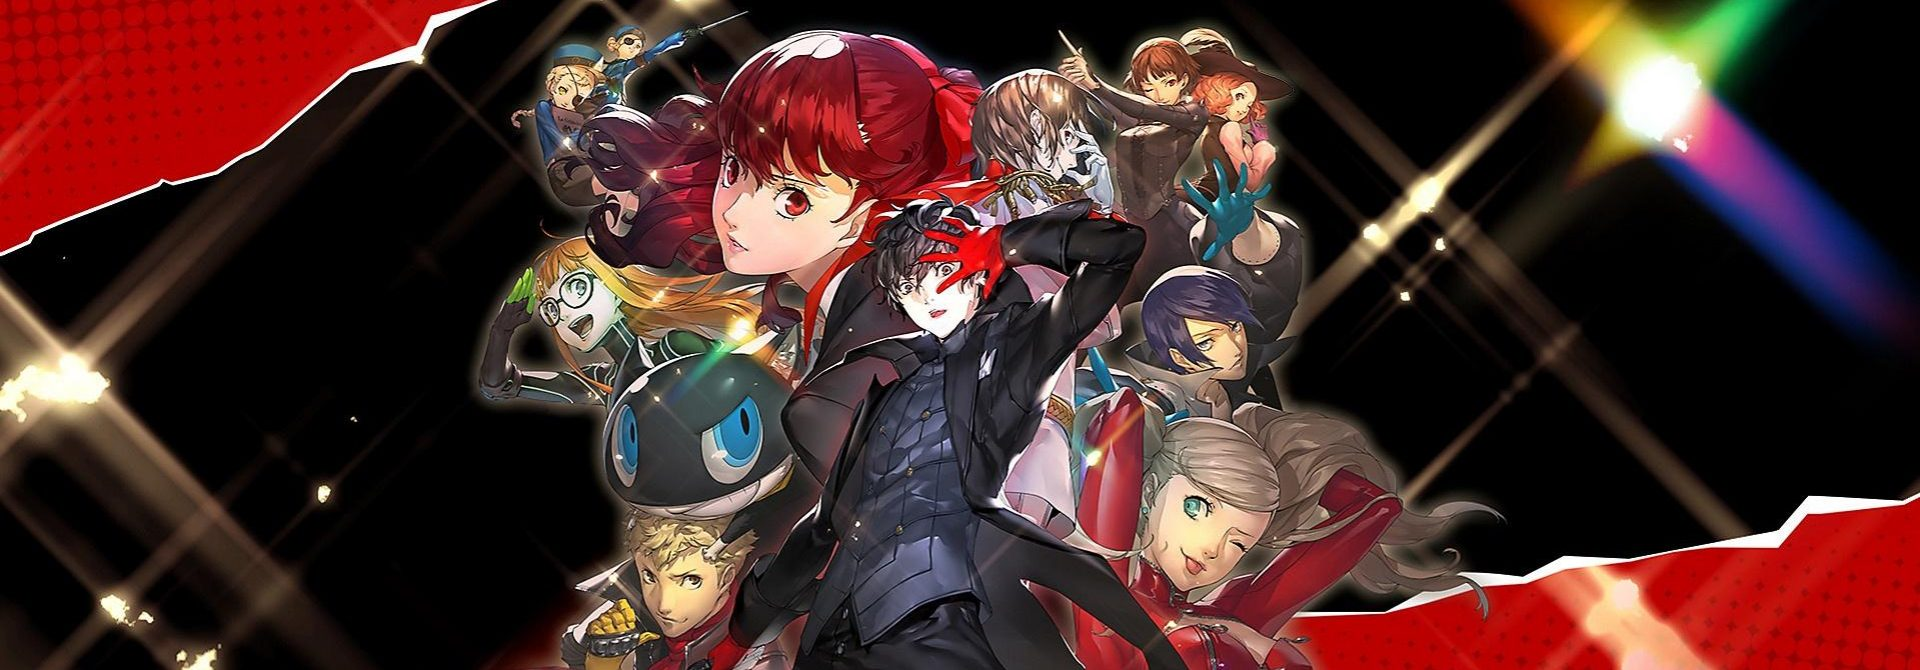 Persona 5 Royal Now Up For Preorder